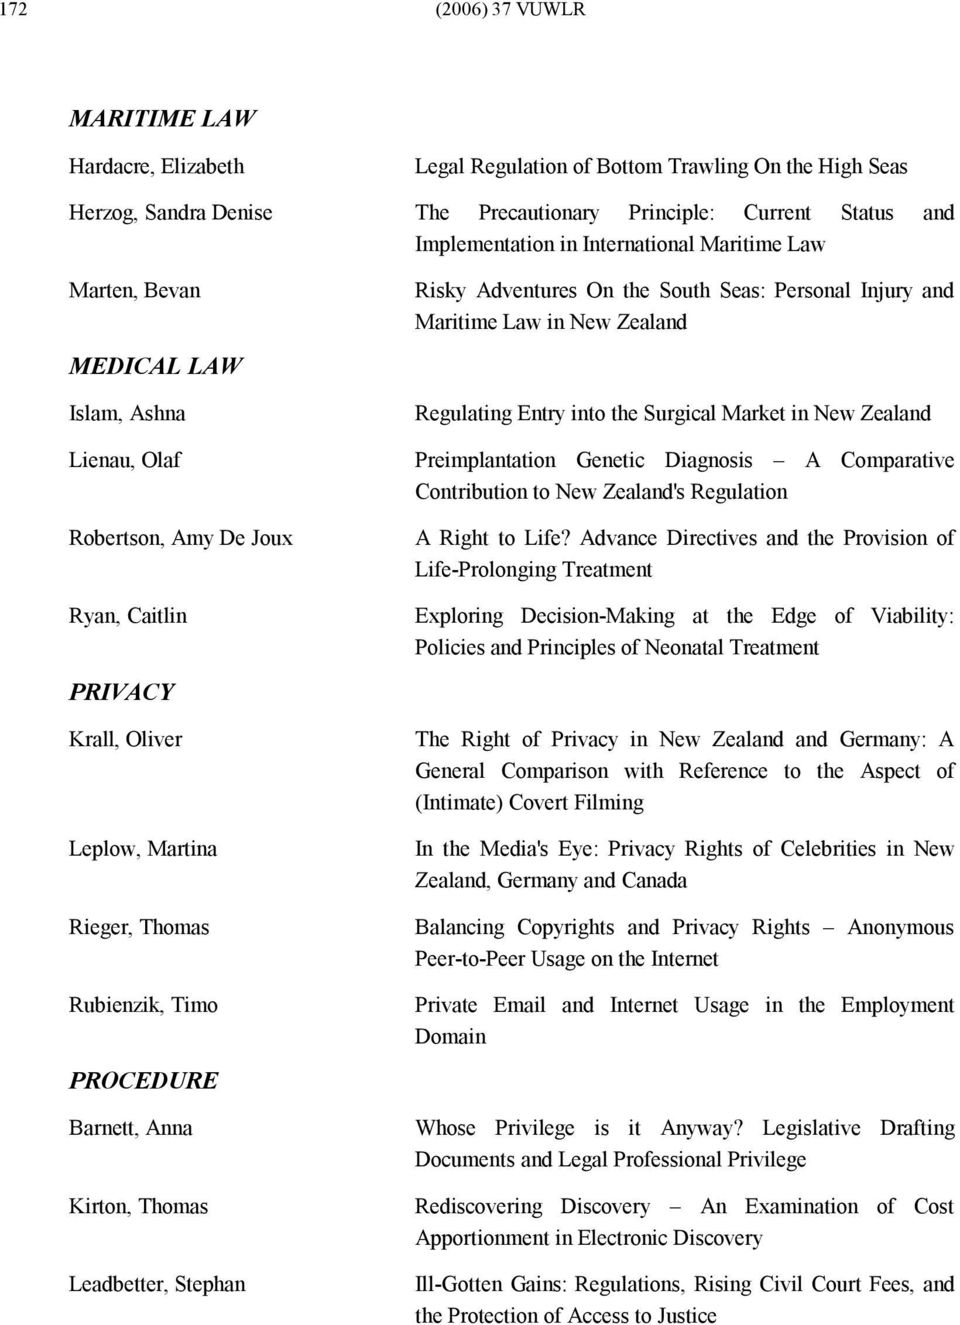 Barnett, Anna Kirton, Thomas Leadbetter, Stephan Risky Adventures On the South Seas: Personal Injury and Maritime Law in New Zealand Regulating Entry into the Surgical Market in New Zealand